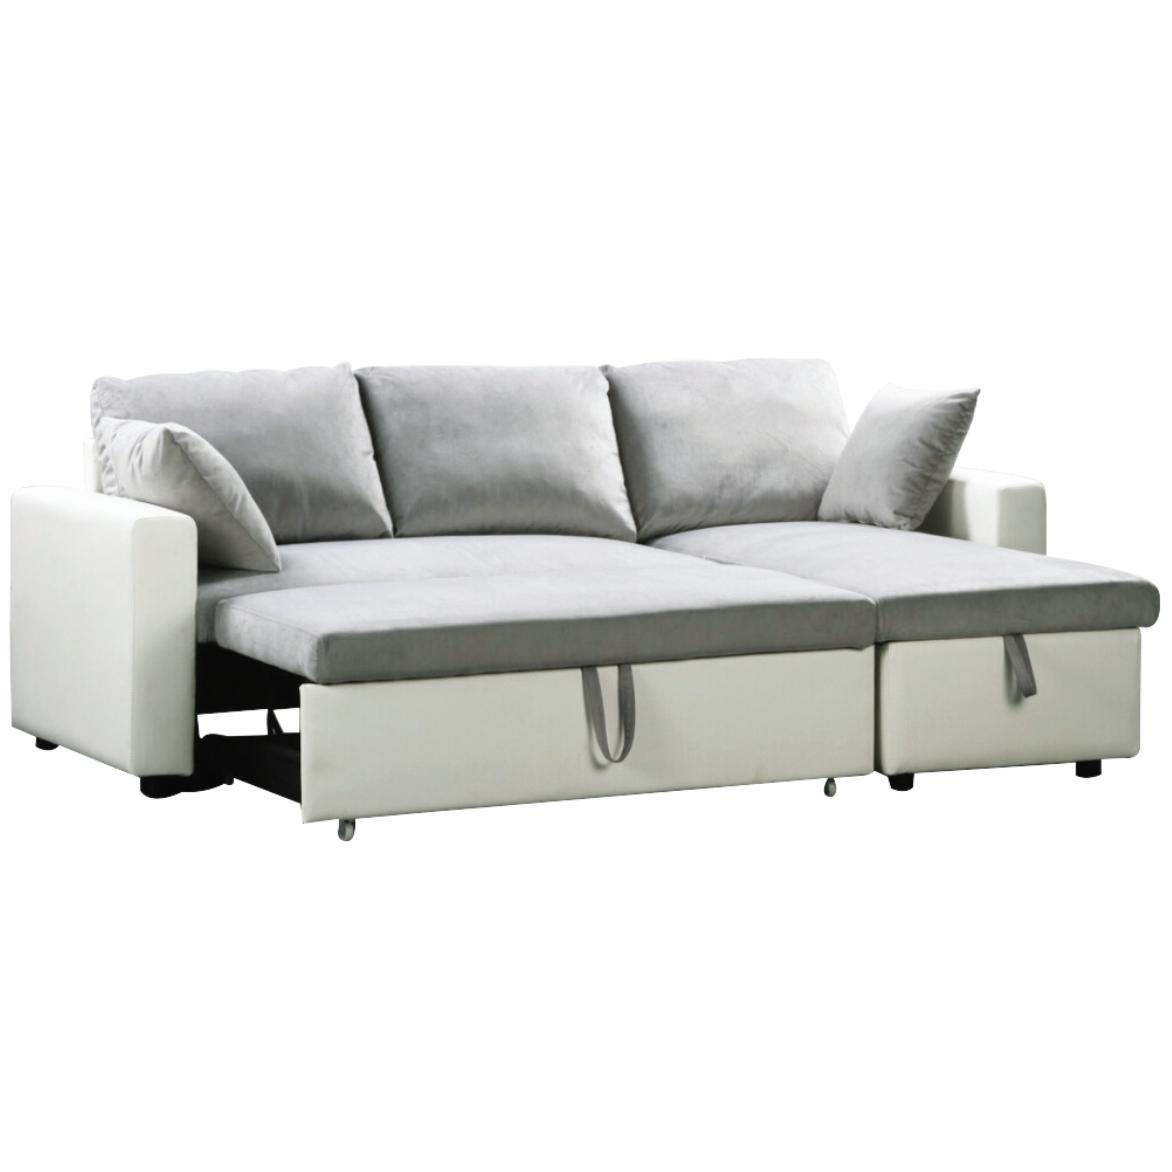 grey and white sofa bed leather beige reversible corner pu microlfiber